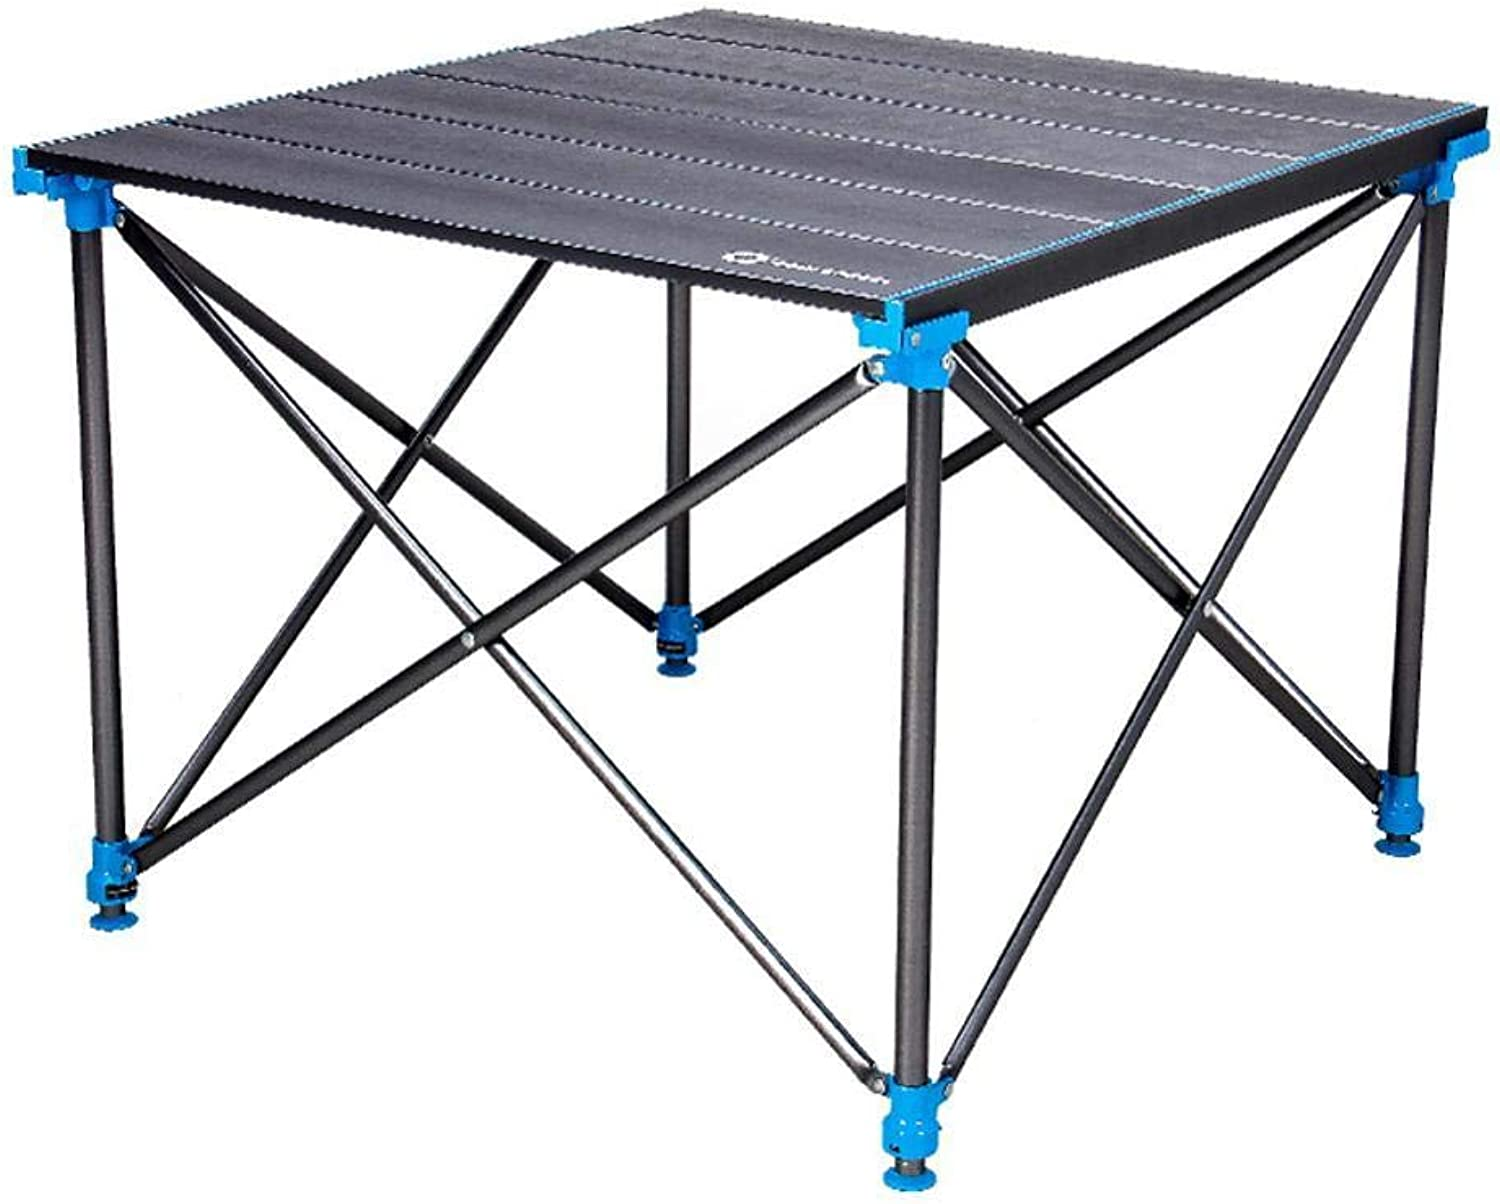 Mzl Outdoor Folding Table Aluminum Picnic Table Portable Ultralight Camping Simple Table (70  63  50 70cm)